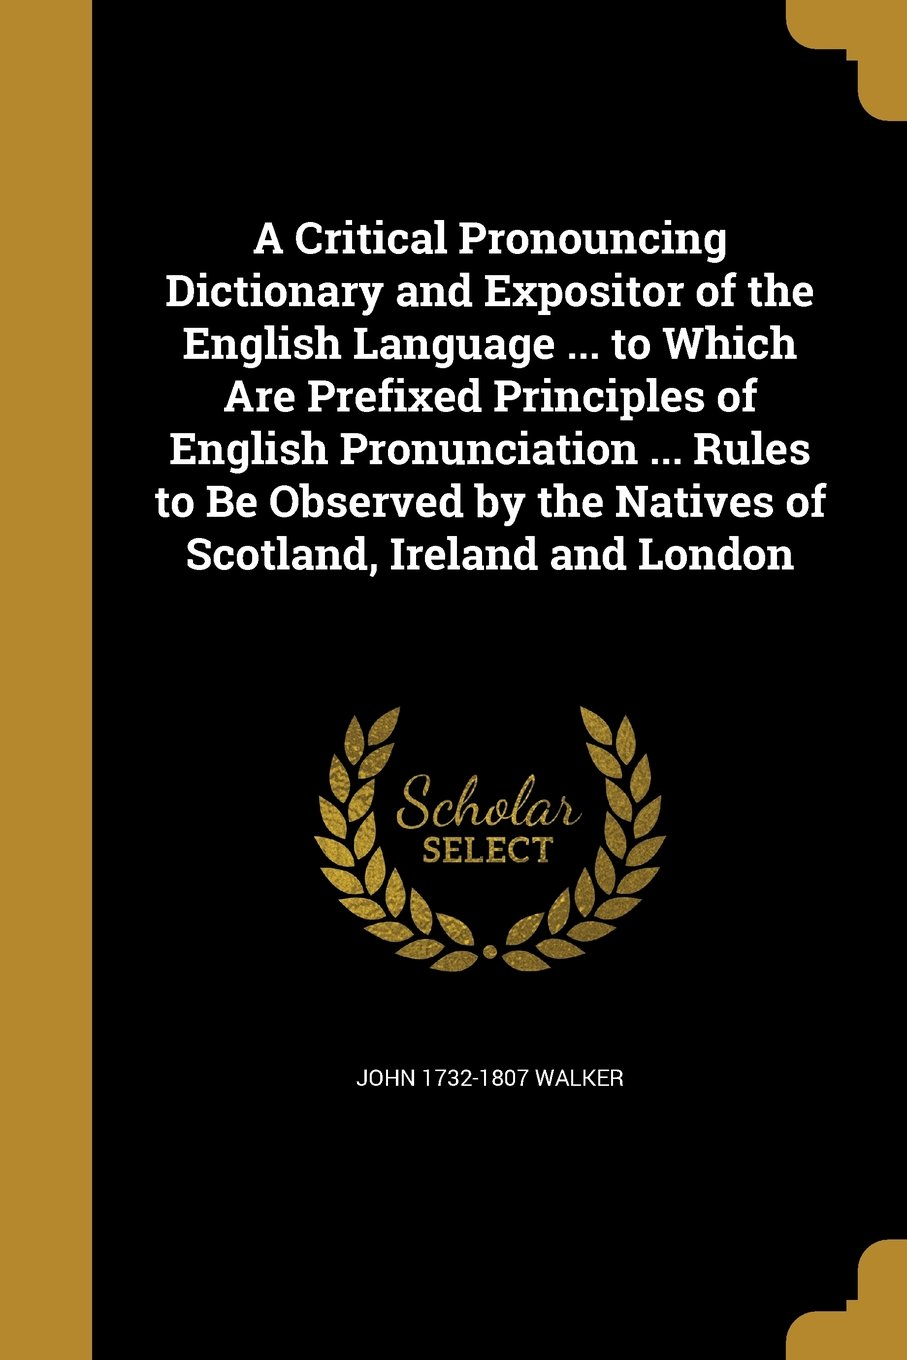 Read Online A Critical Pronouncing Dictionary and Expositor of the English Language ... to Which Are Prefixed Principles of English Pronunciation ... Rules to Be ... the Natives of Scotland, Ireland and London PDF